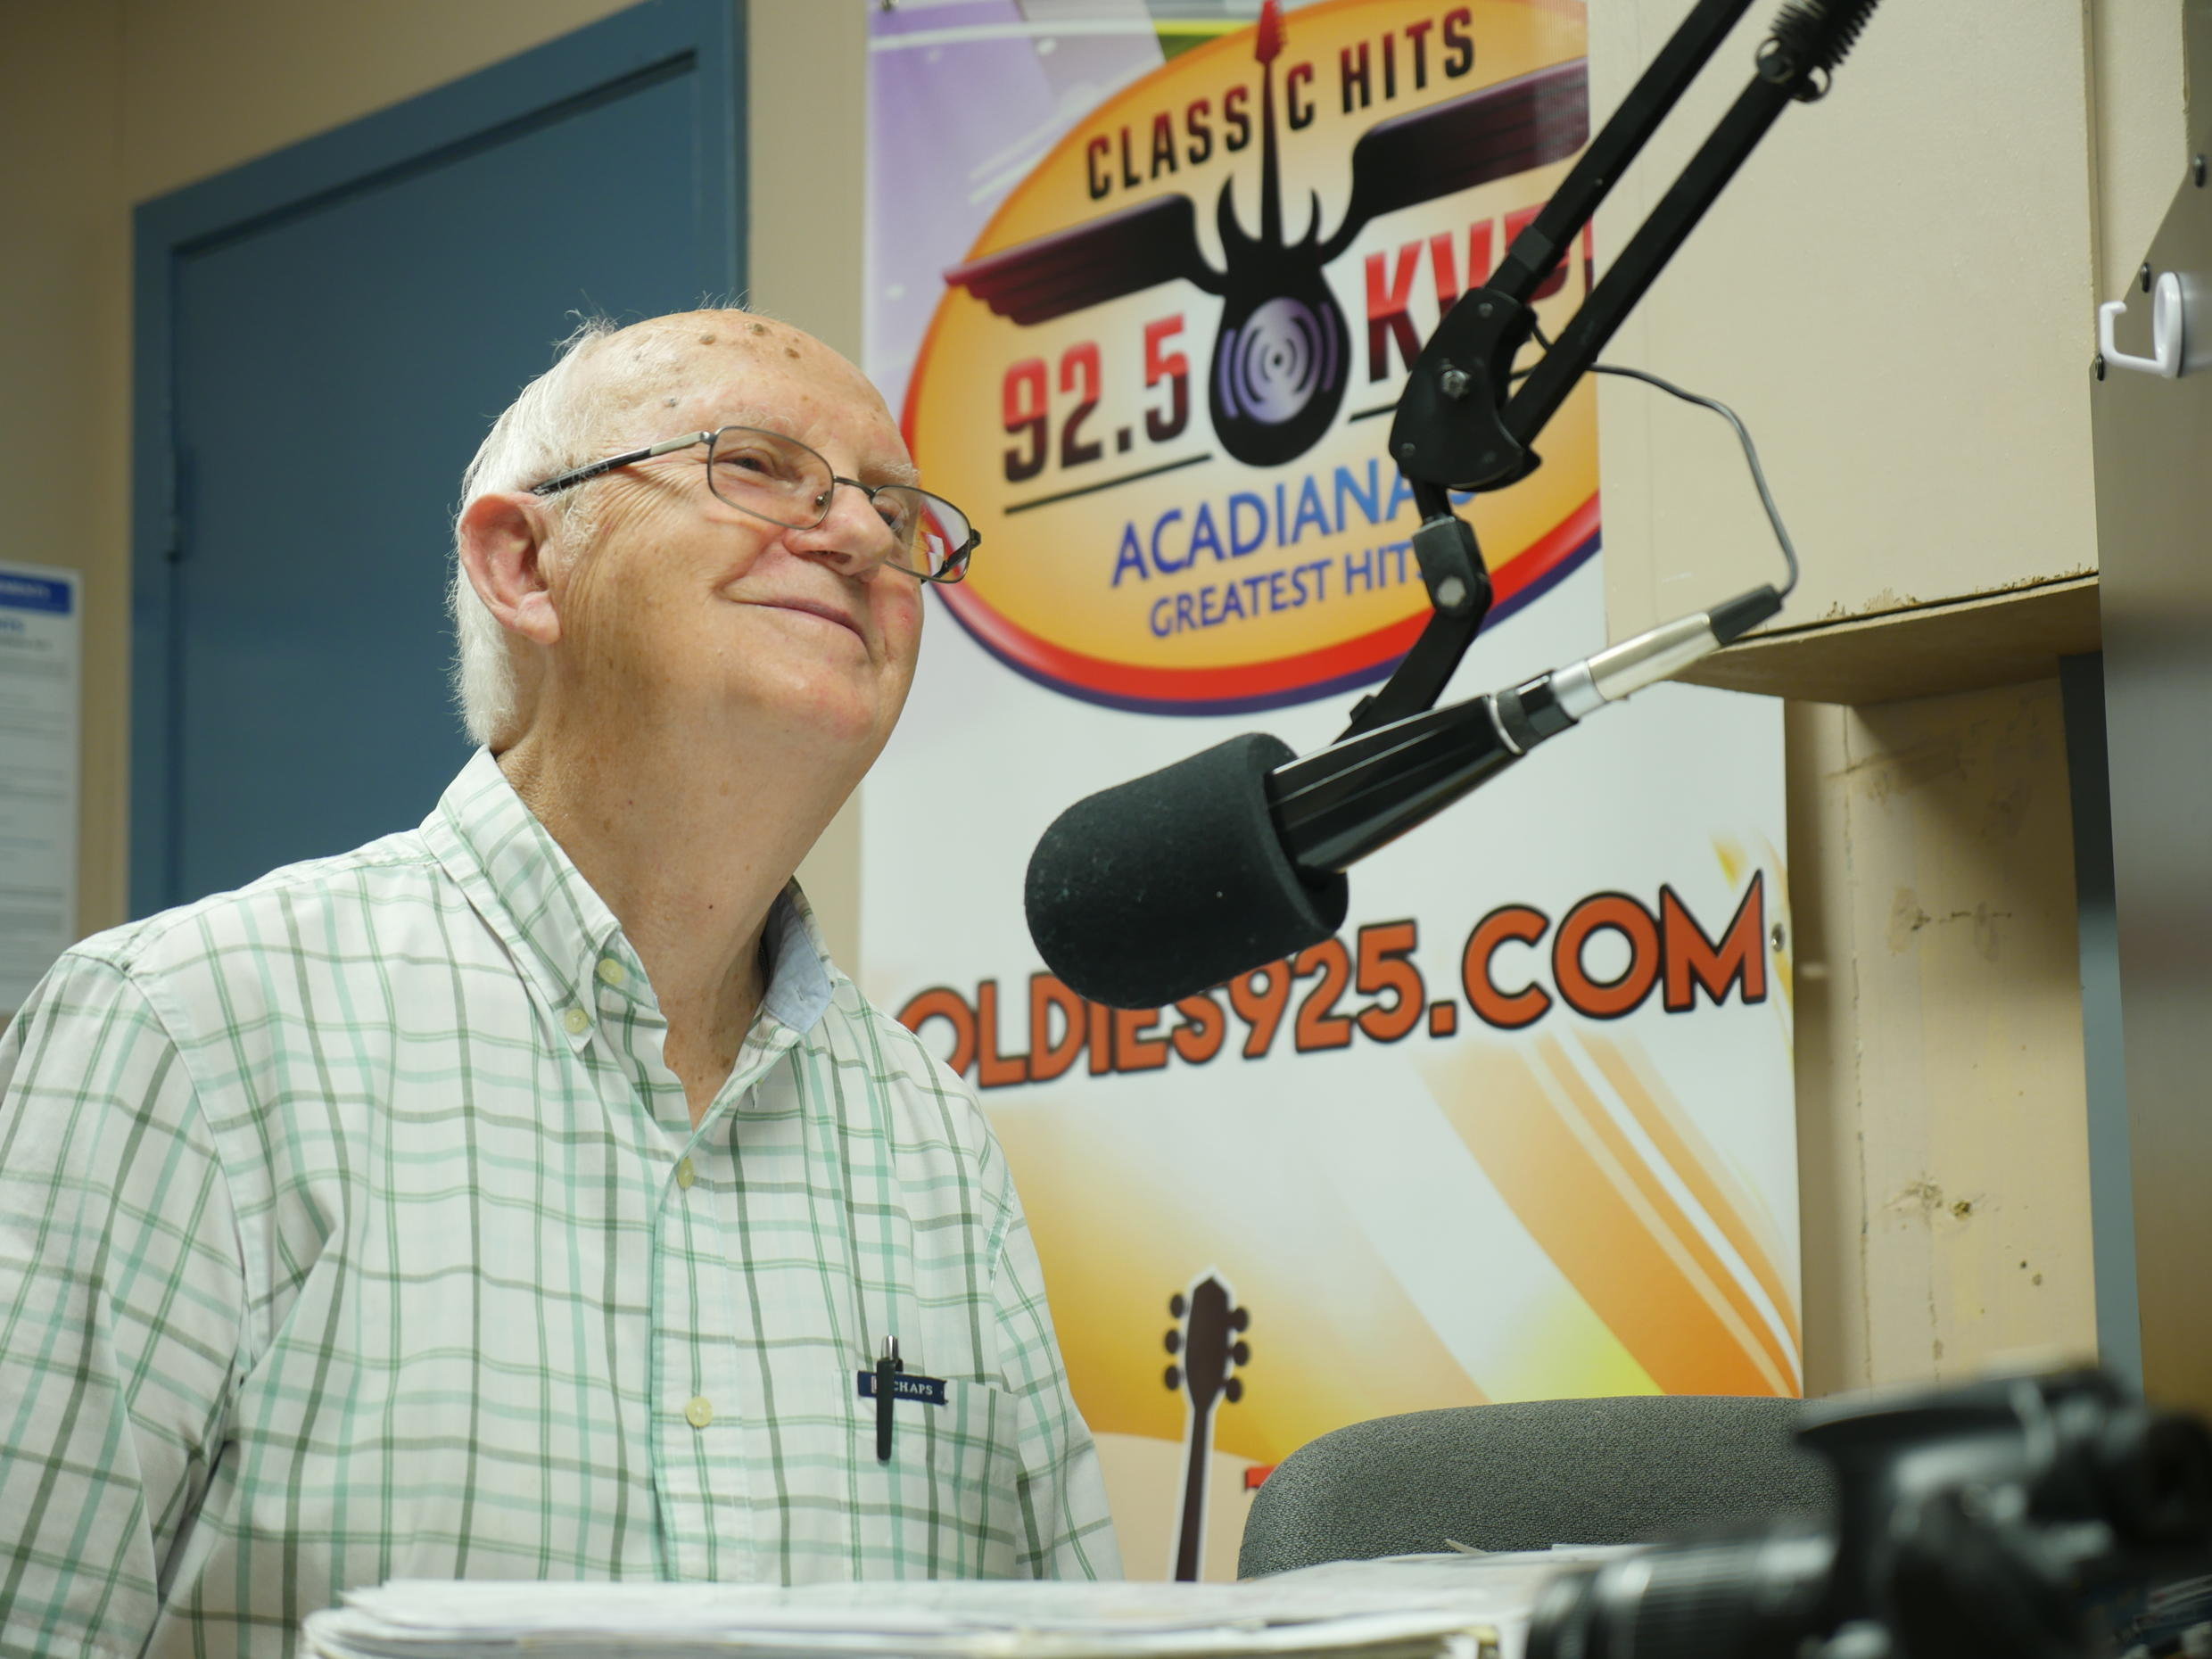 """Jim Soileau, a proud Cajun, is co-host of the radio show """"La Tasse de Café"""", which is broadcast in Franglais (French and English) on KVPI from the town of Villeplatte, Louisiana. He's been on the air for more than 60 years!"""